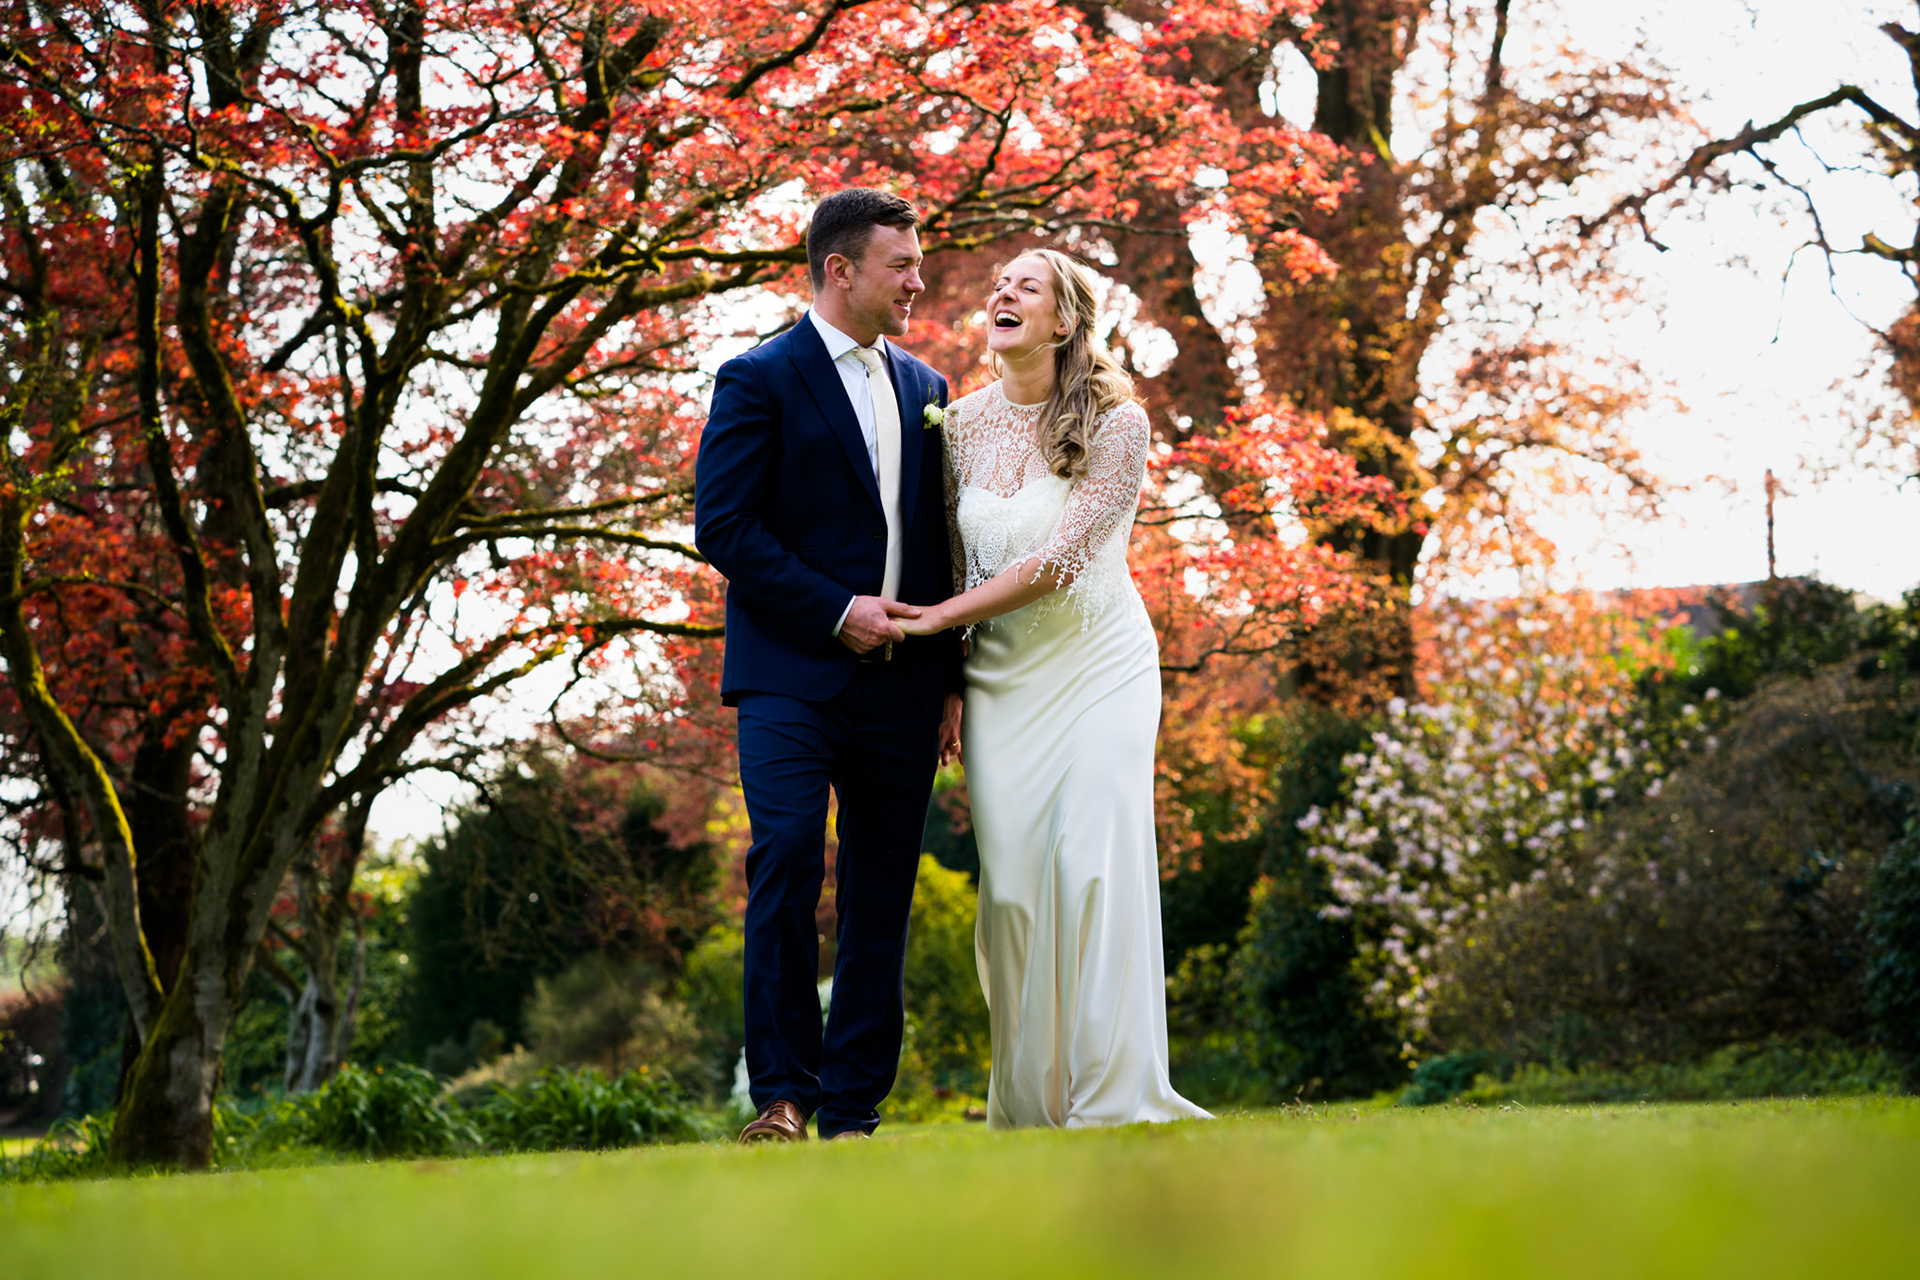 Devon Elopement Couple Relaxed Portrait Session | The bride and groom cannot contain their joy